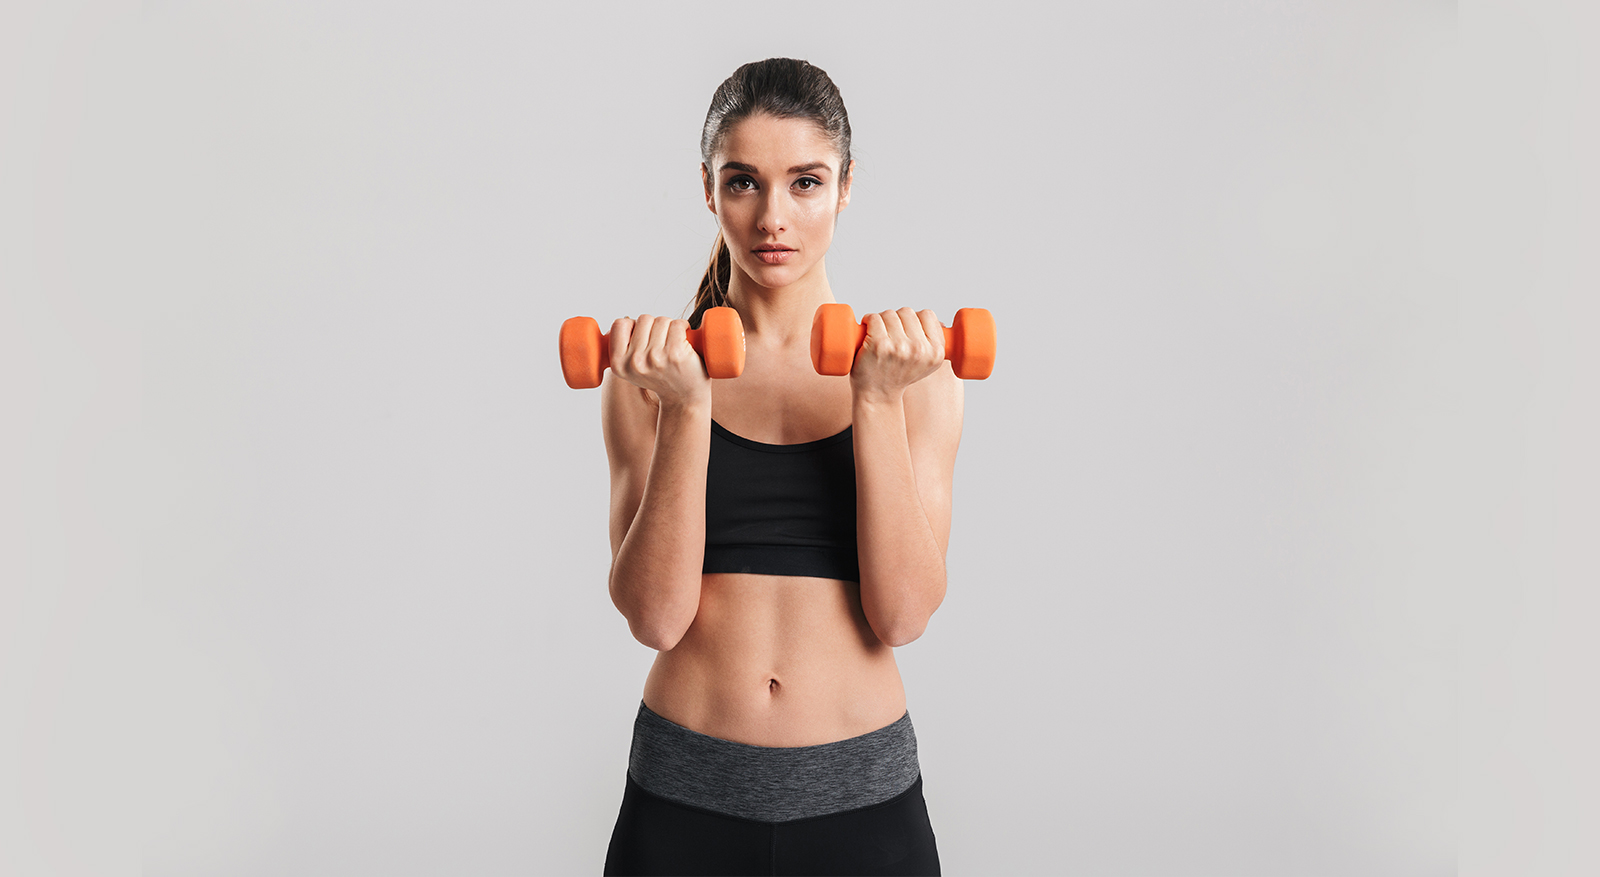 Women Lifting Weights – Myths Debunked